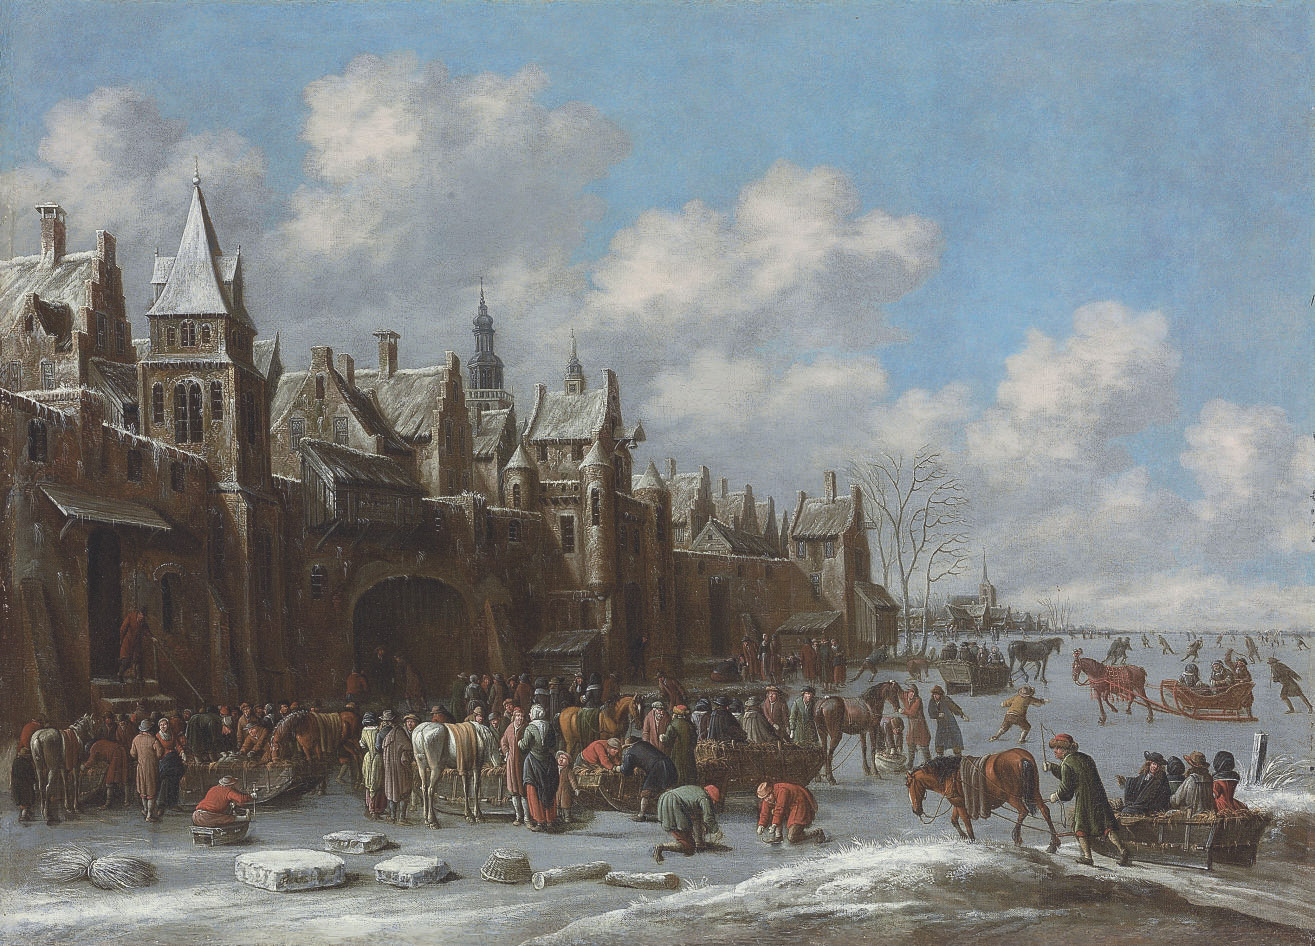 A winter landscape with villagers on a frozen lake outside a town